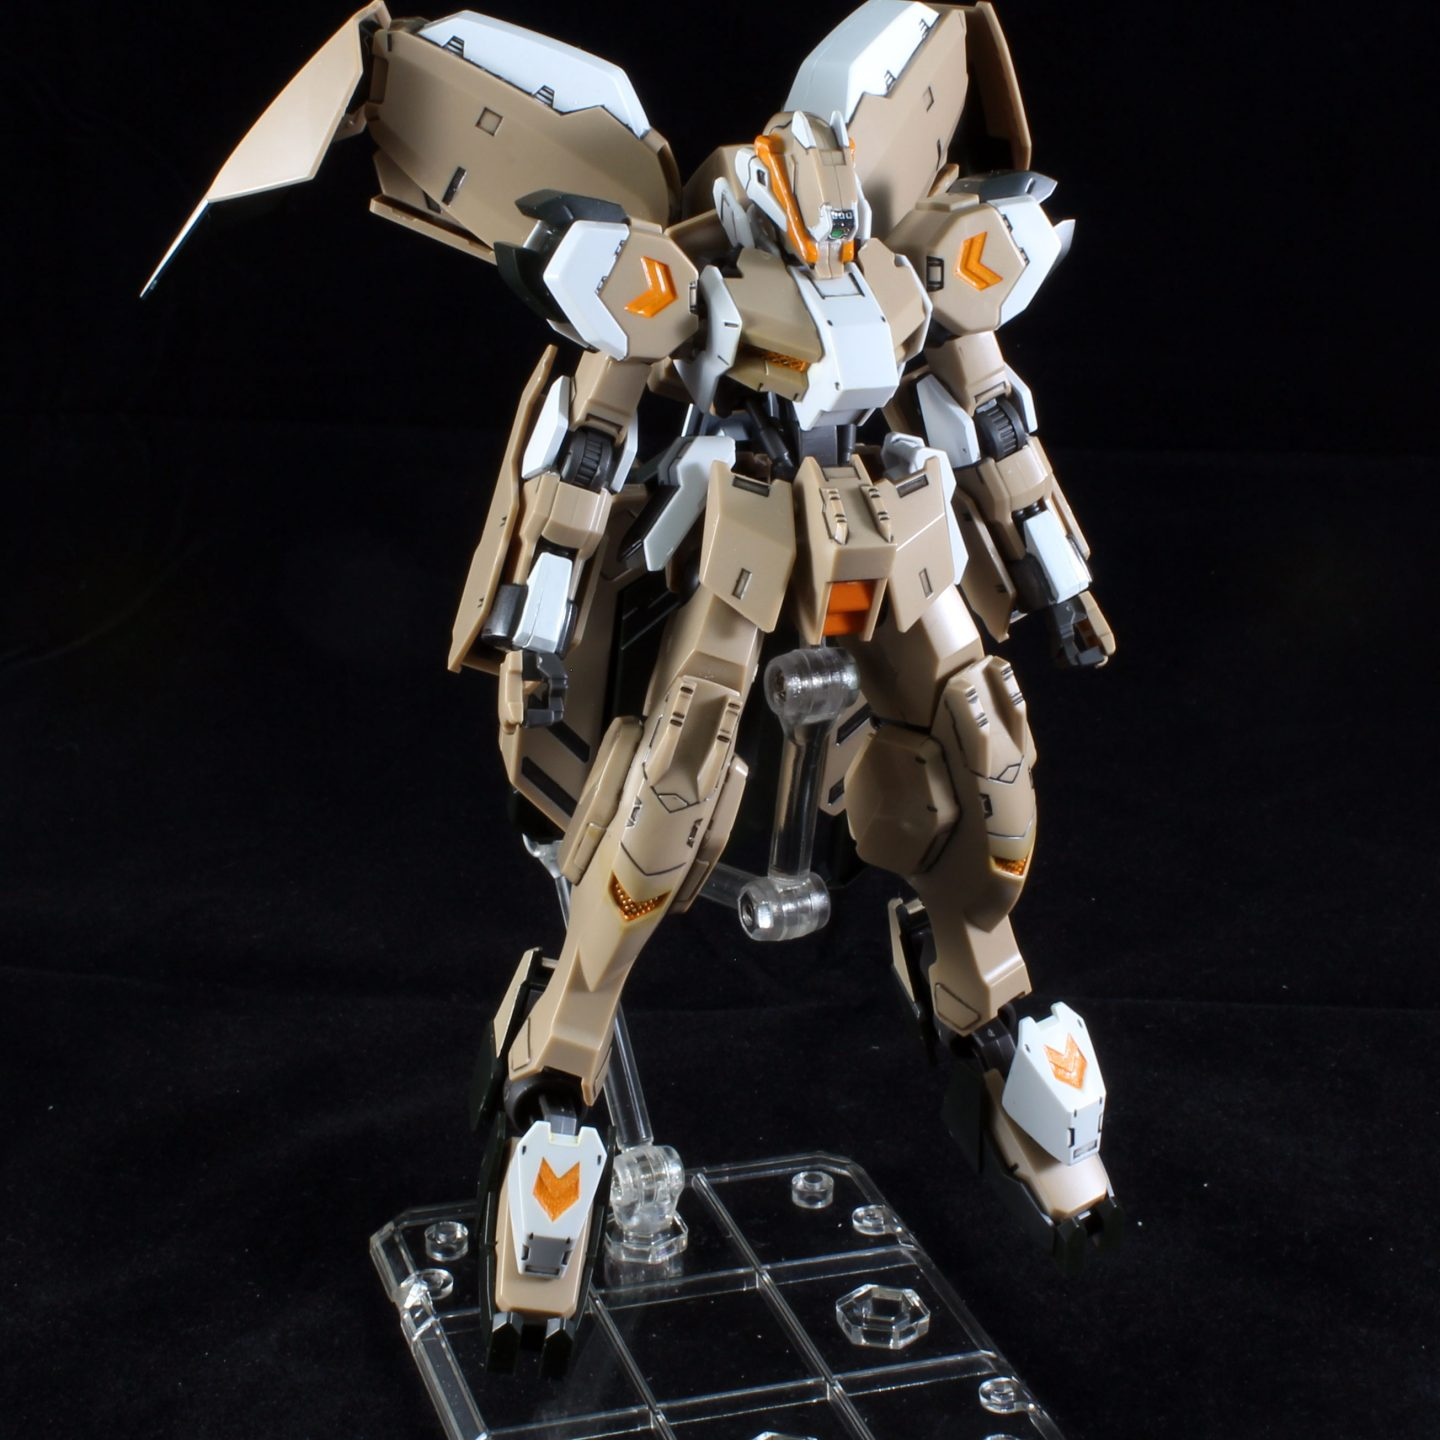 HG 1/144 Gundam Gusion Rebake Full City – Photo Gallery